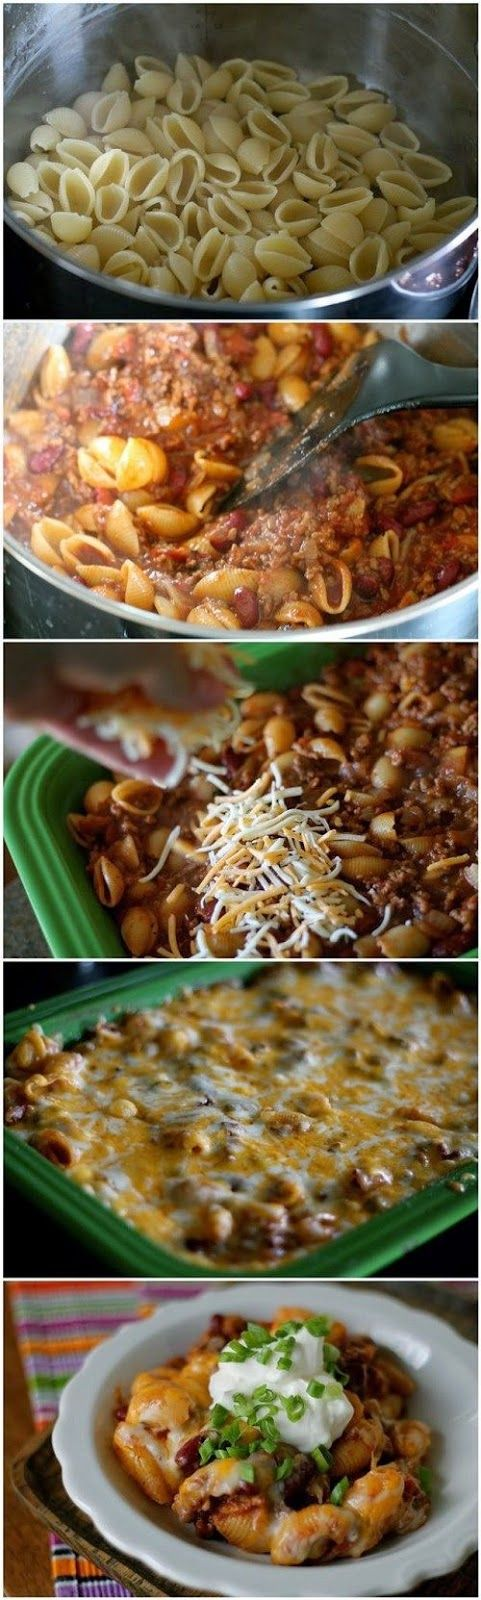 Chili Pasta Bake... Substitute ground beef for ground turkey...use whole wheat pasta...use little to no cheese